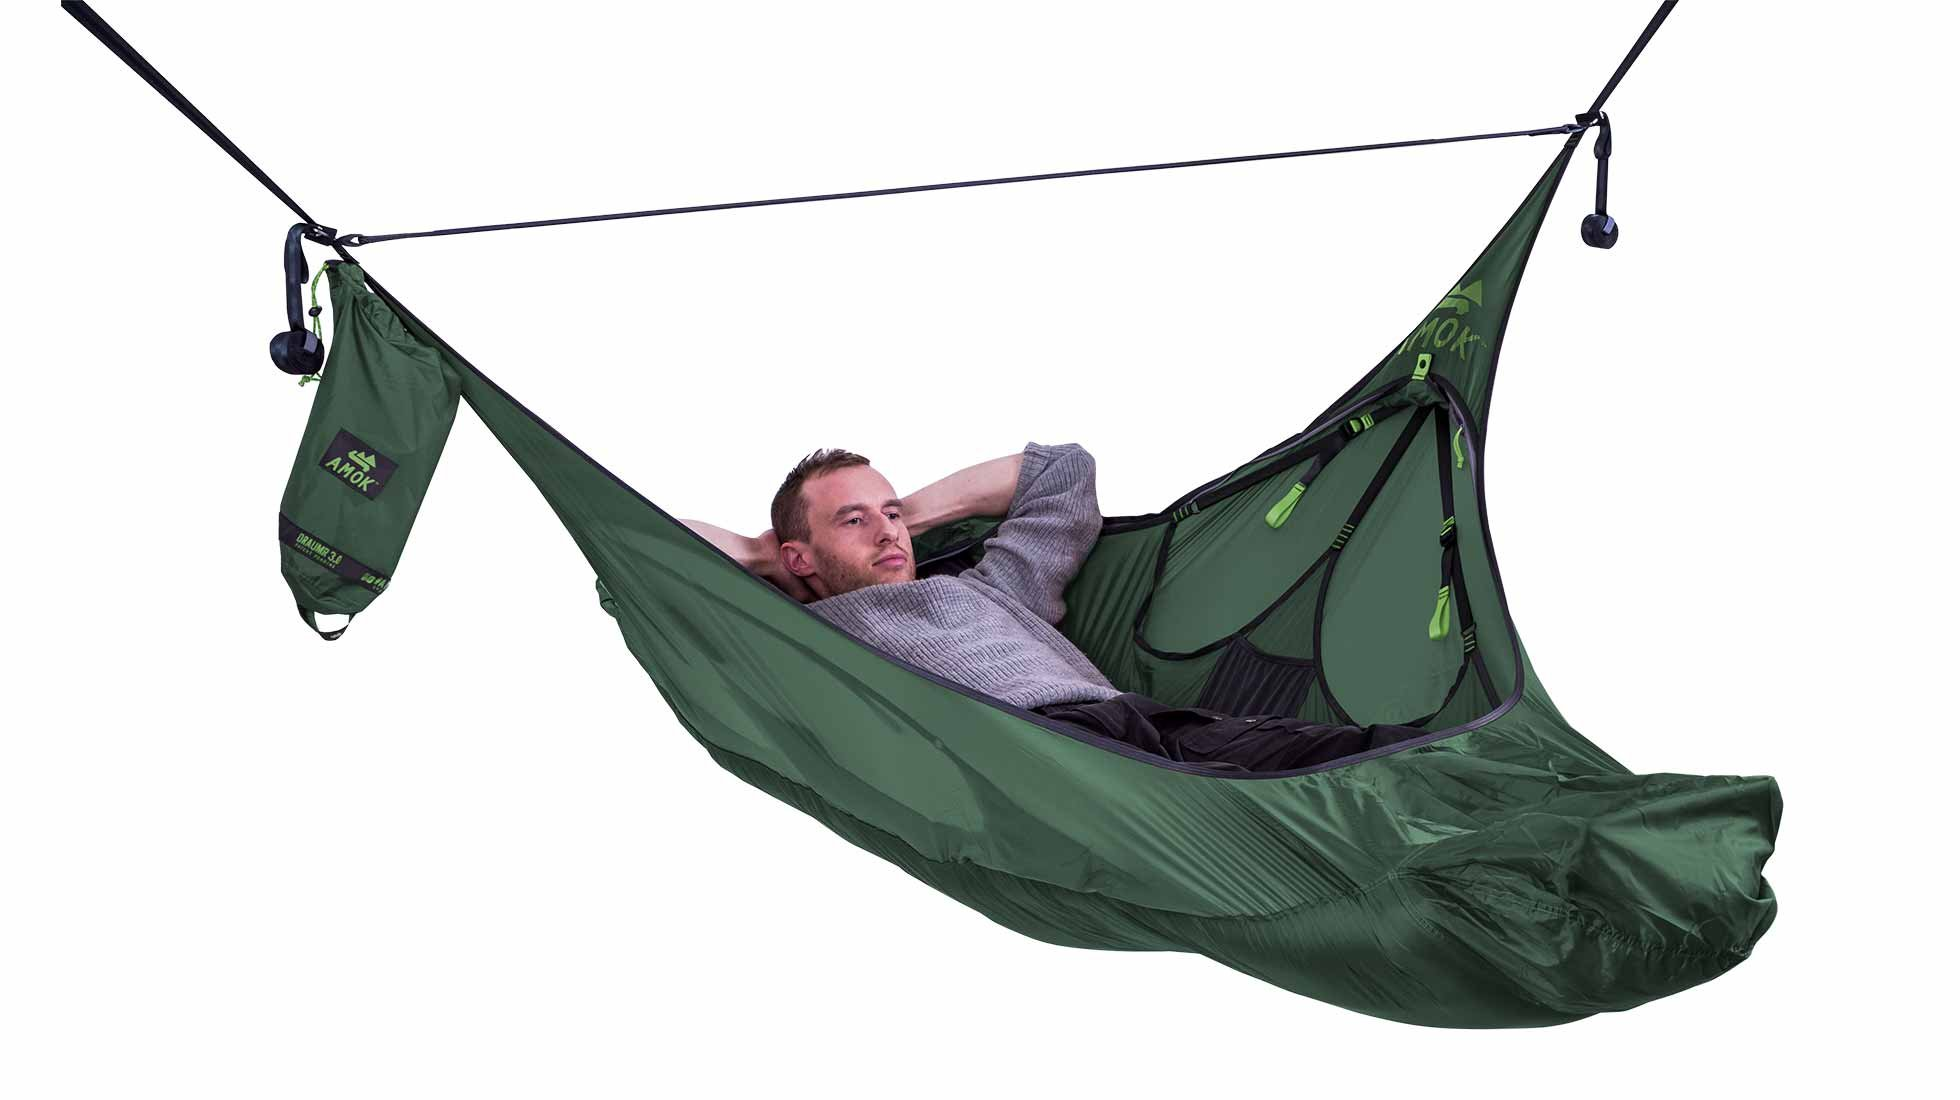 Amok Equipment Flat Lay Camping Hammock with Mosquito Net and Suspension Kit. Portable Hammock for One Person that can be turned into a Chair. (Woody Green)